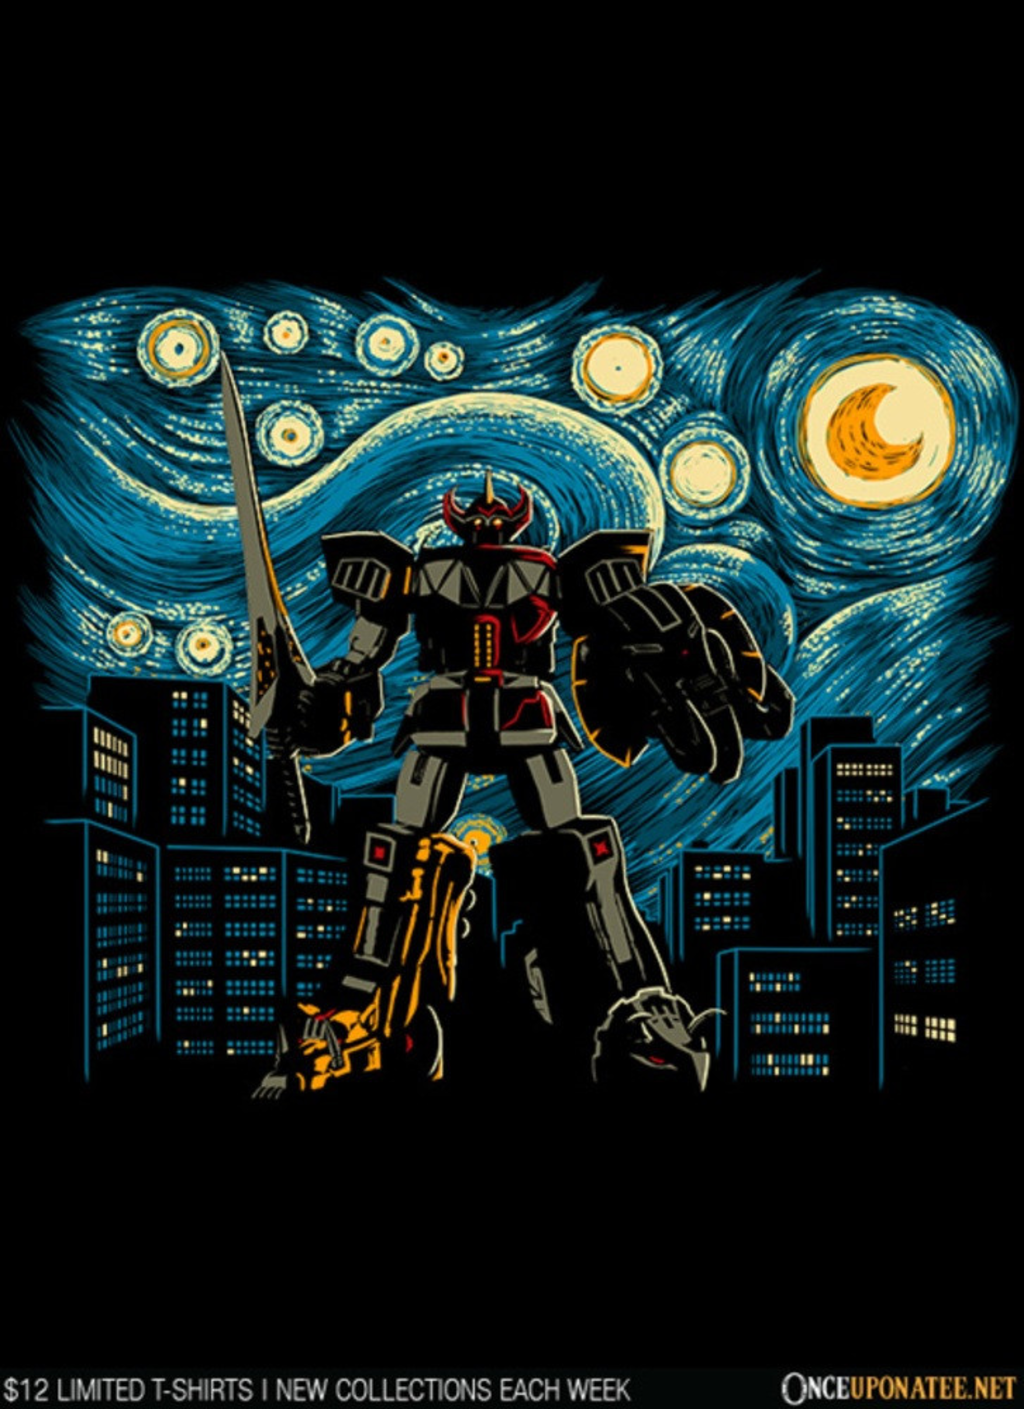 Once Upon a Tee: Starry Megazord